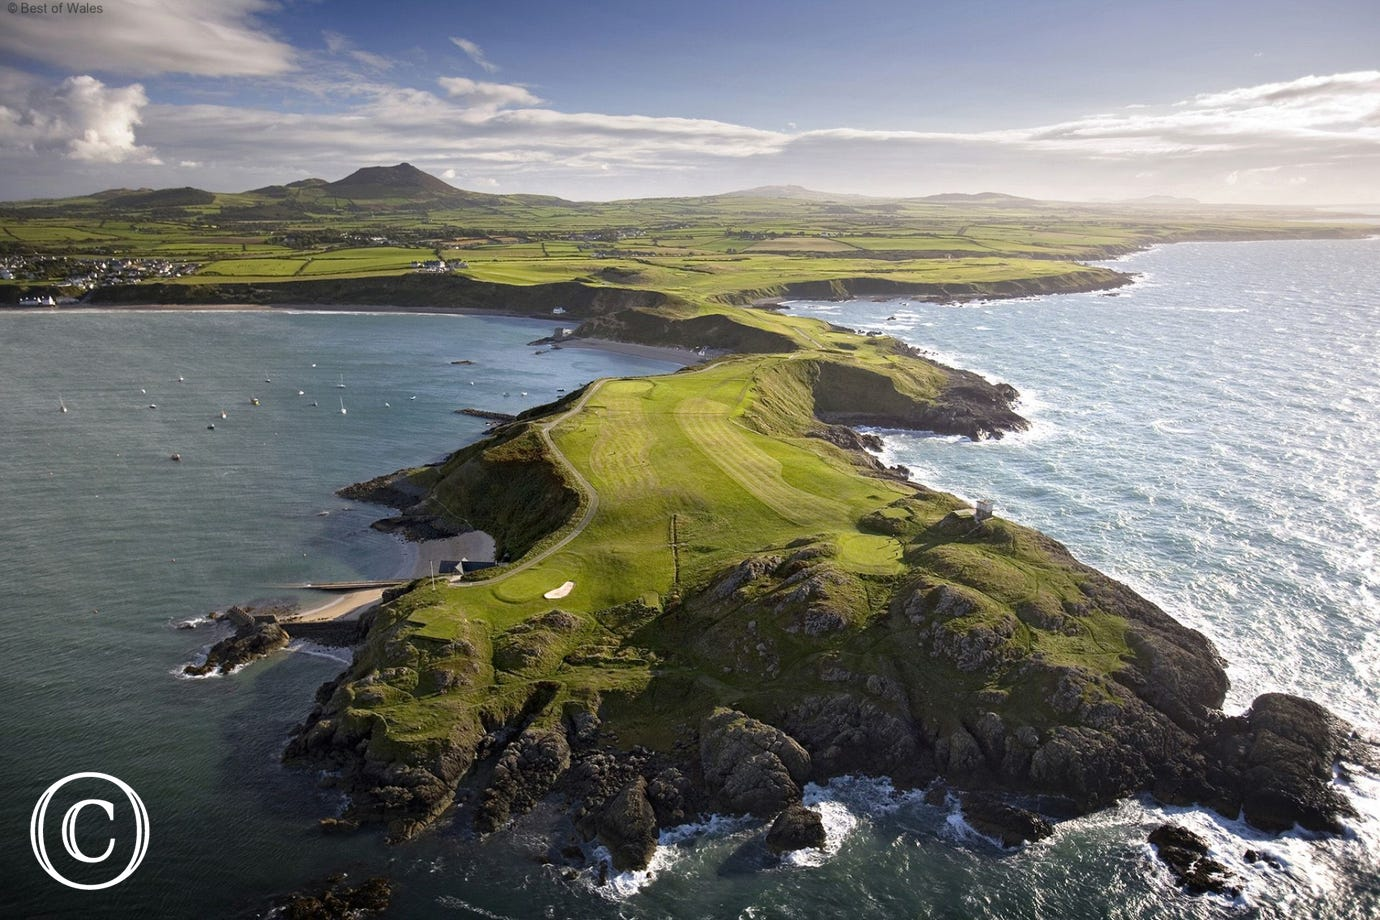 Nefyn and District Golf Club offering two cliff top 18 hole courses